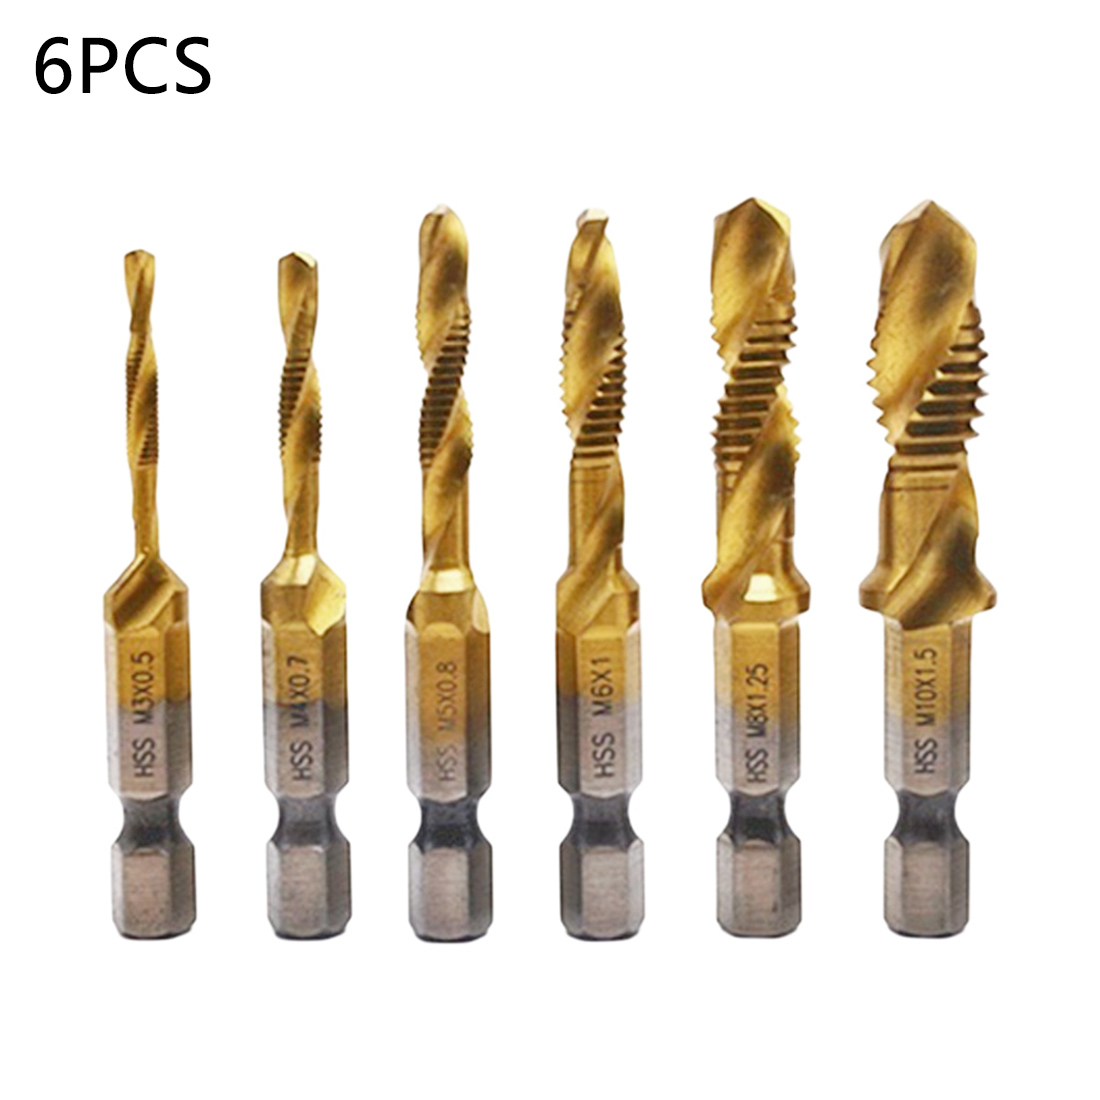 6pcs M3 M4 M5 M6 M8 M10 HSS Drill Bit Tap HSS Drill Bits Metric Thread Spiral Screw1/4